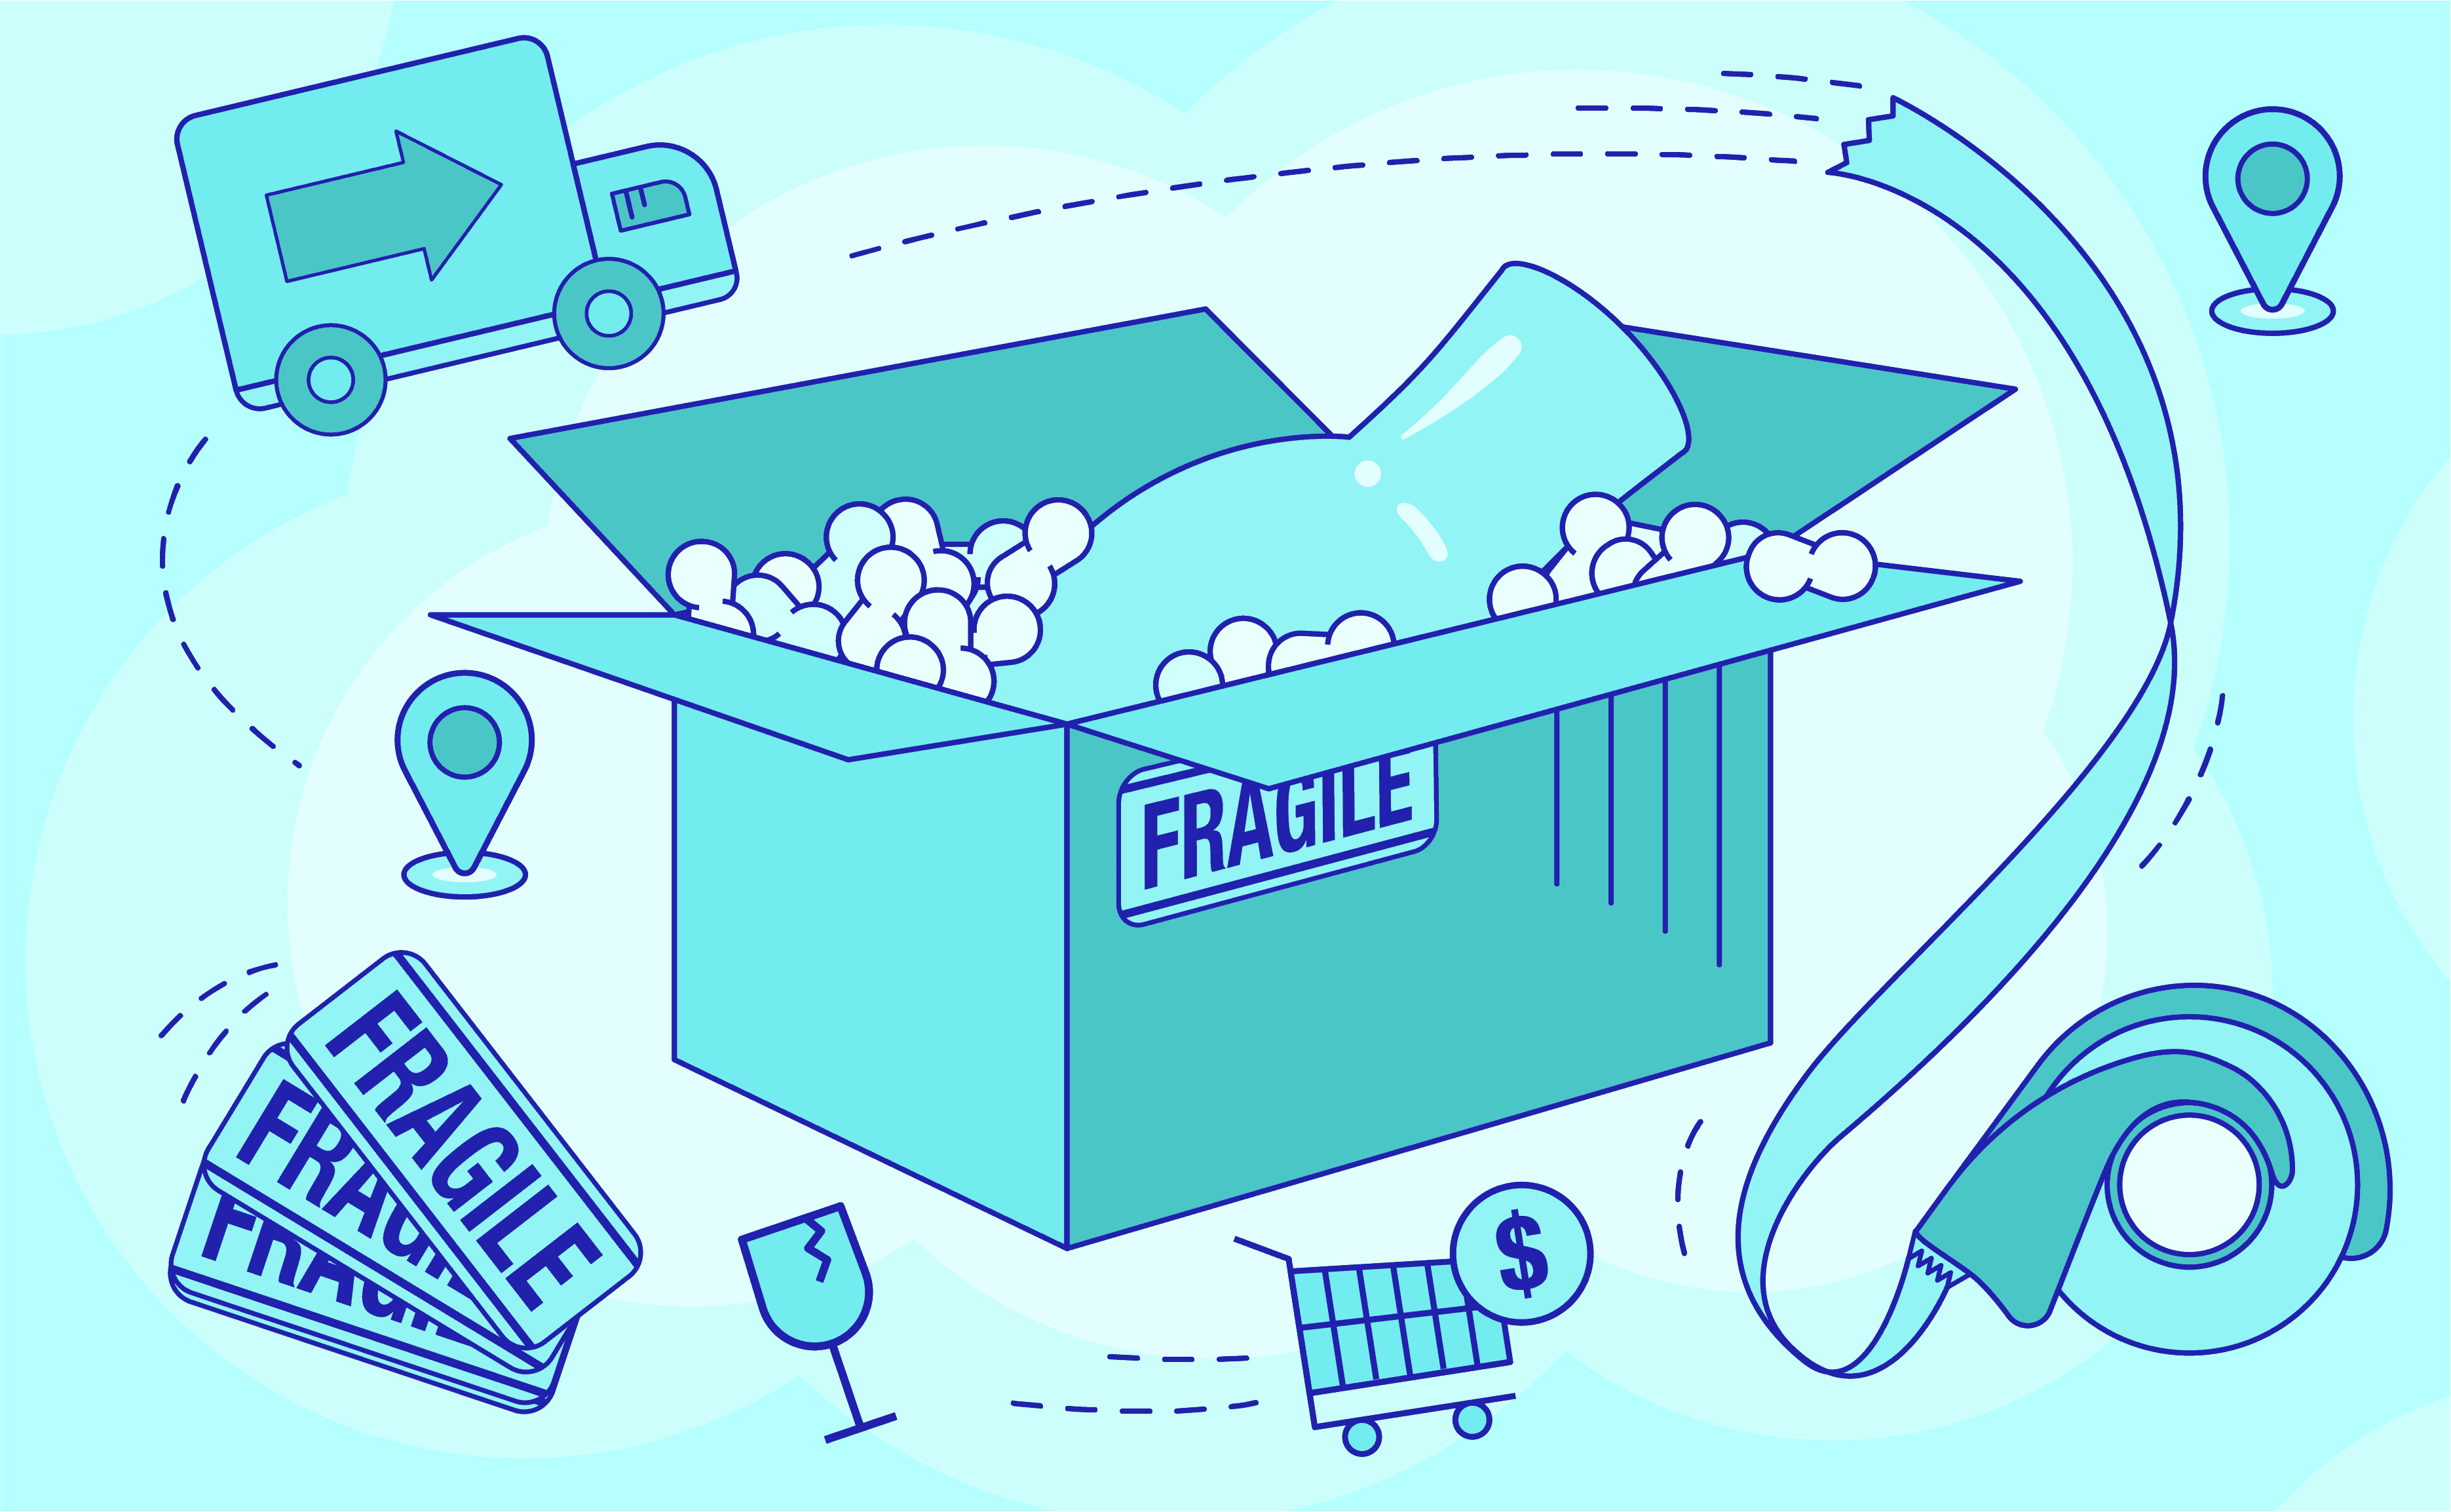 a package containing a vase with a fragile label and filled with packing peanuts